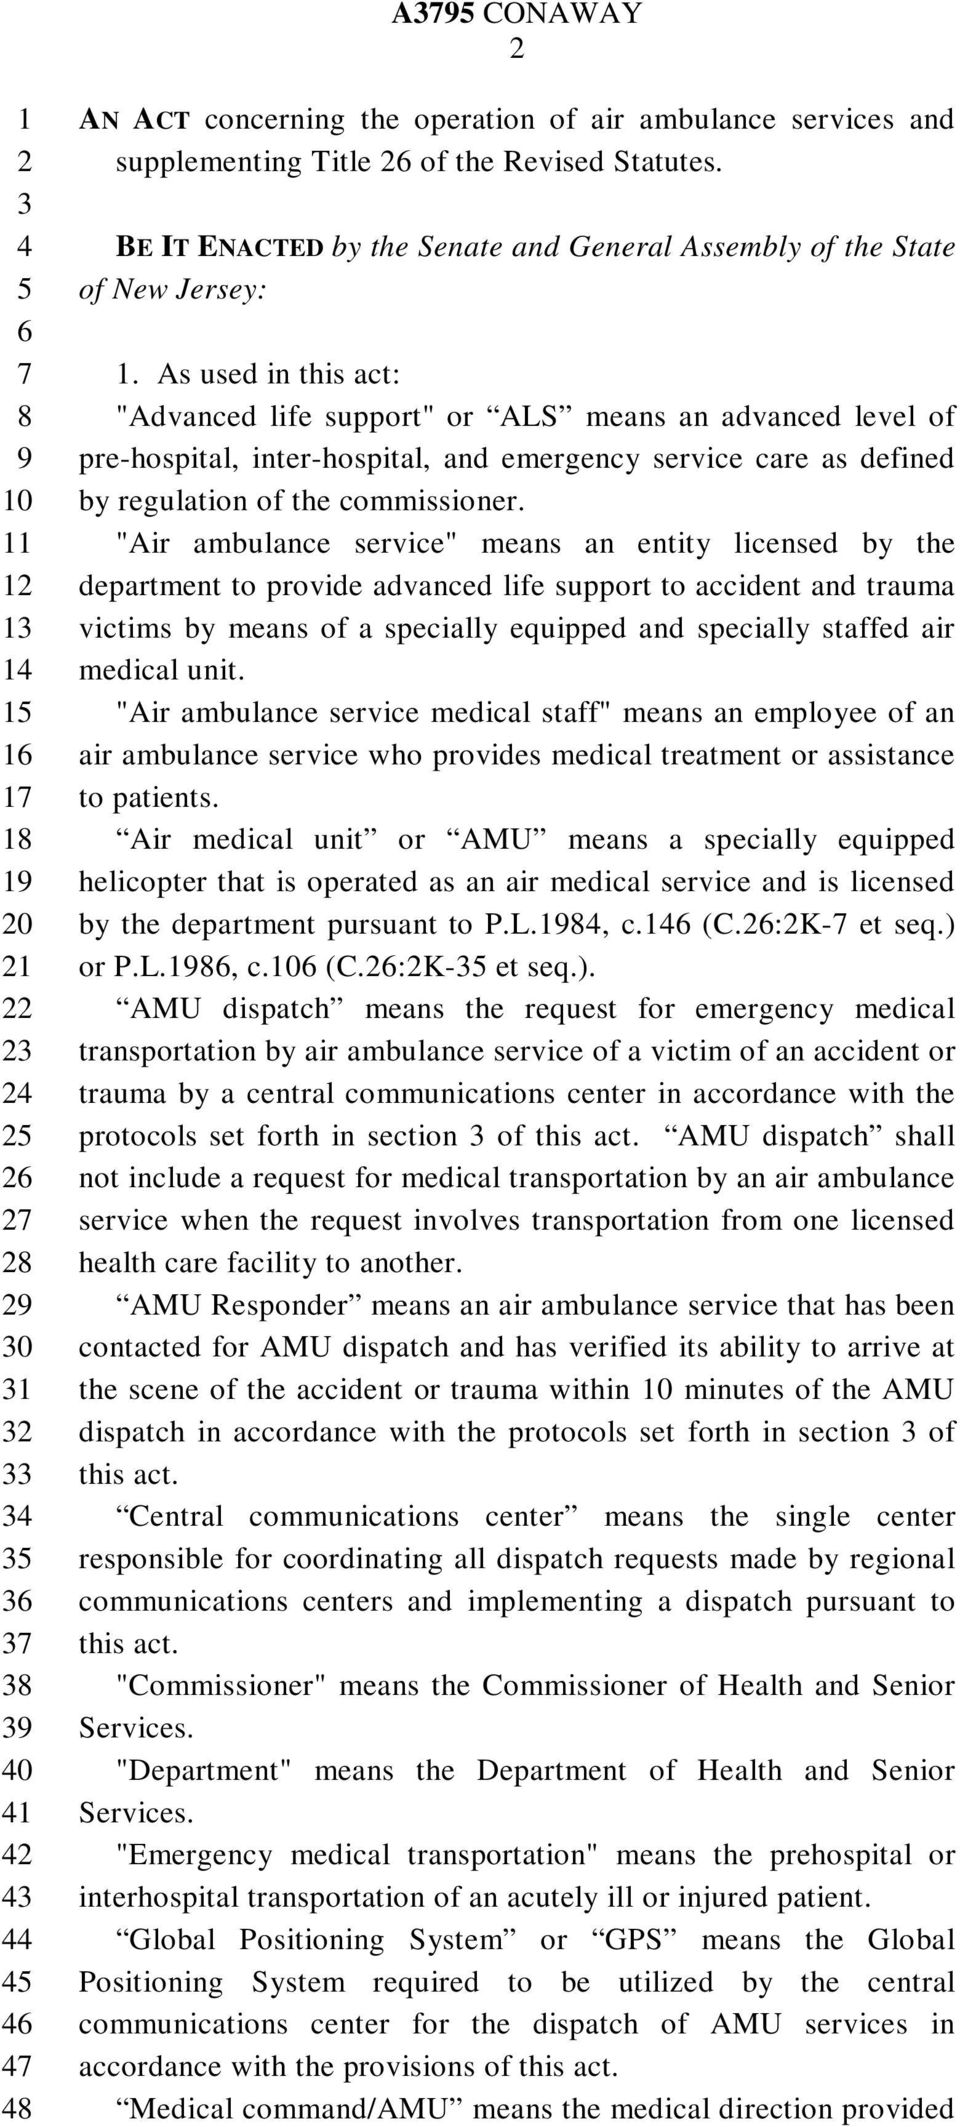 "As used in this act: ""Advanced life support"" or ALS means an advanced level of pre-hospital, inter-hospital, and emergency service care as defined by regulation of the commissioner."